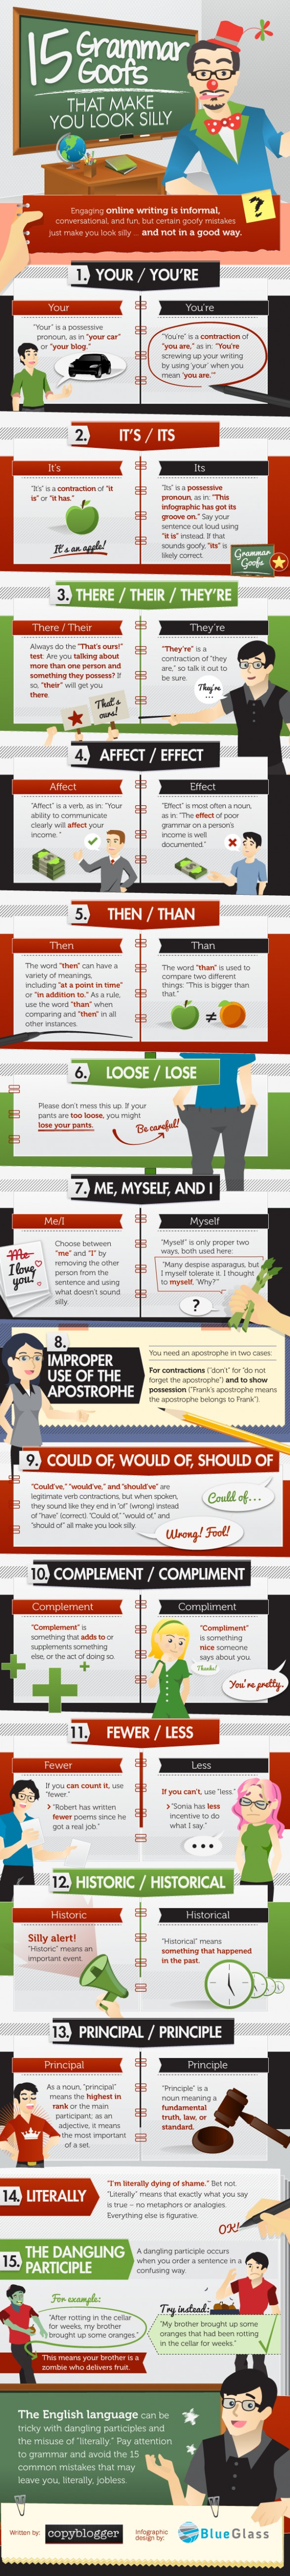 Grammar rules infographic